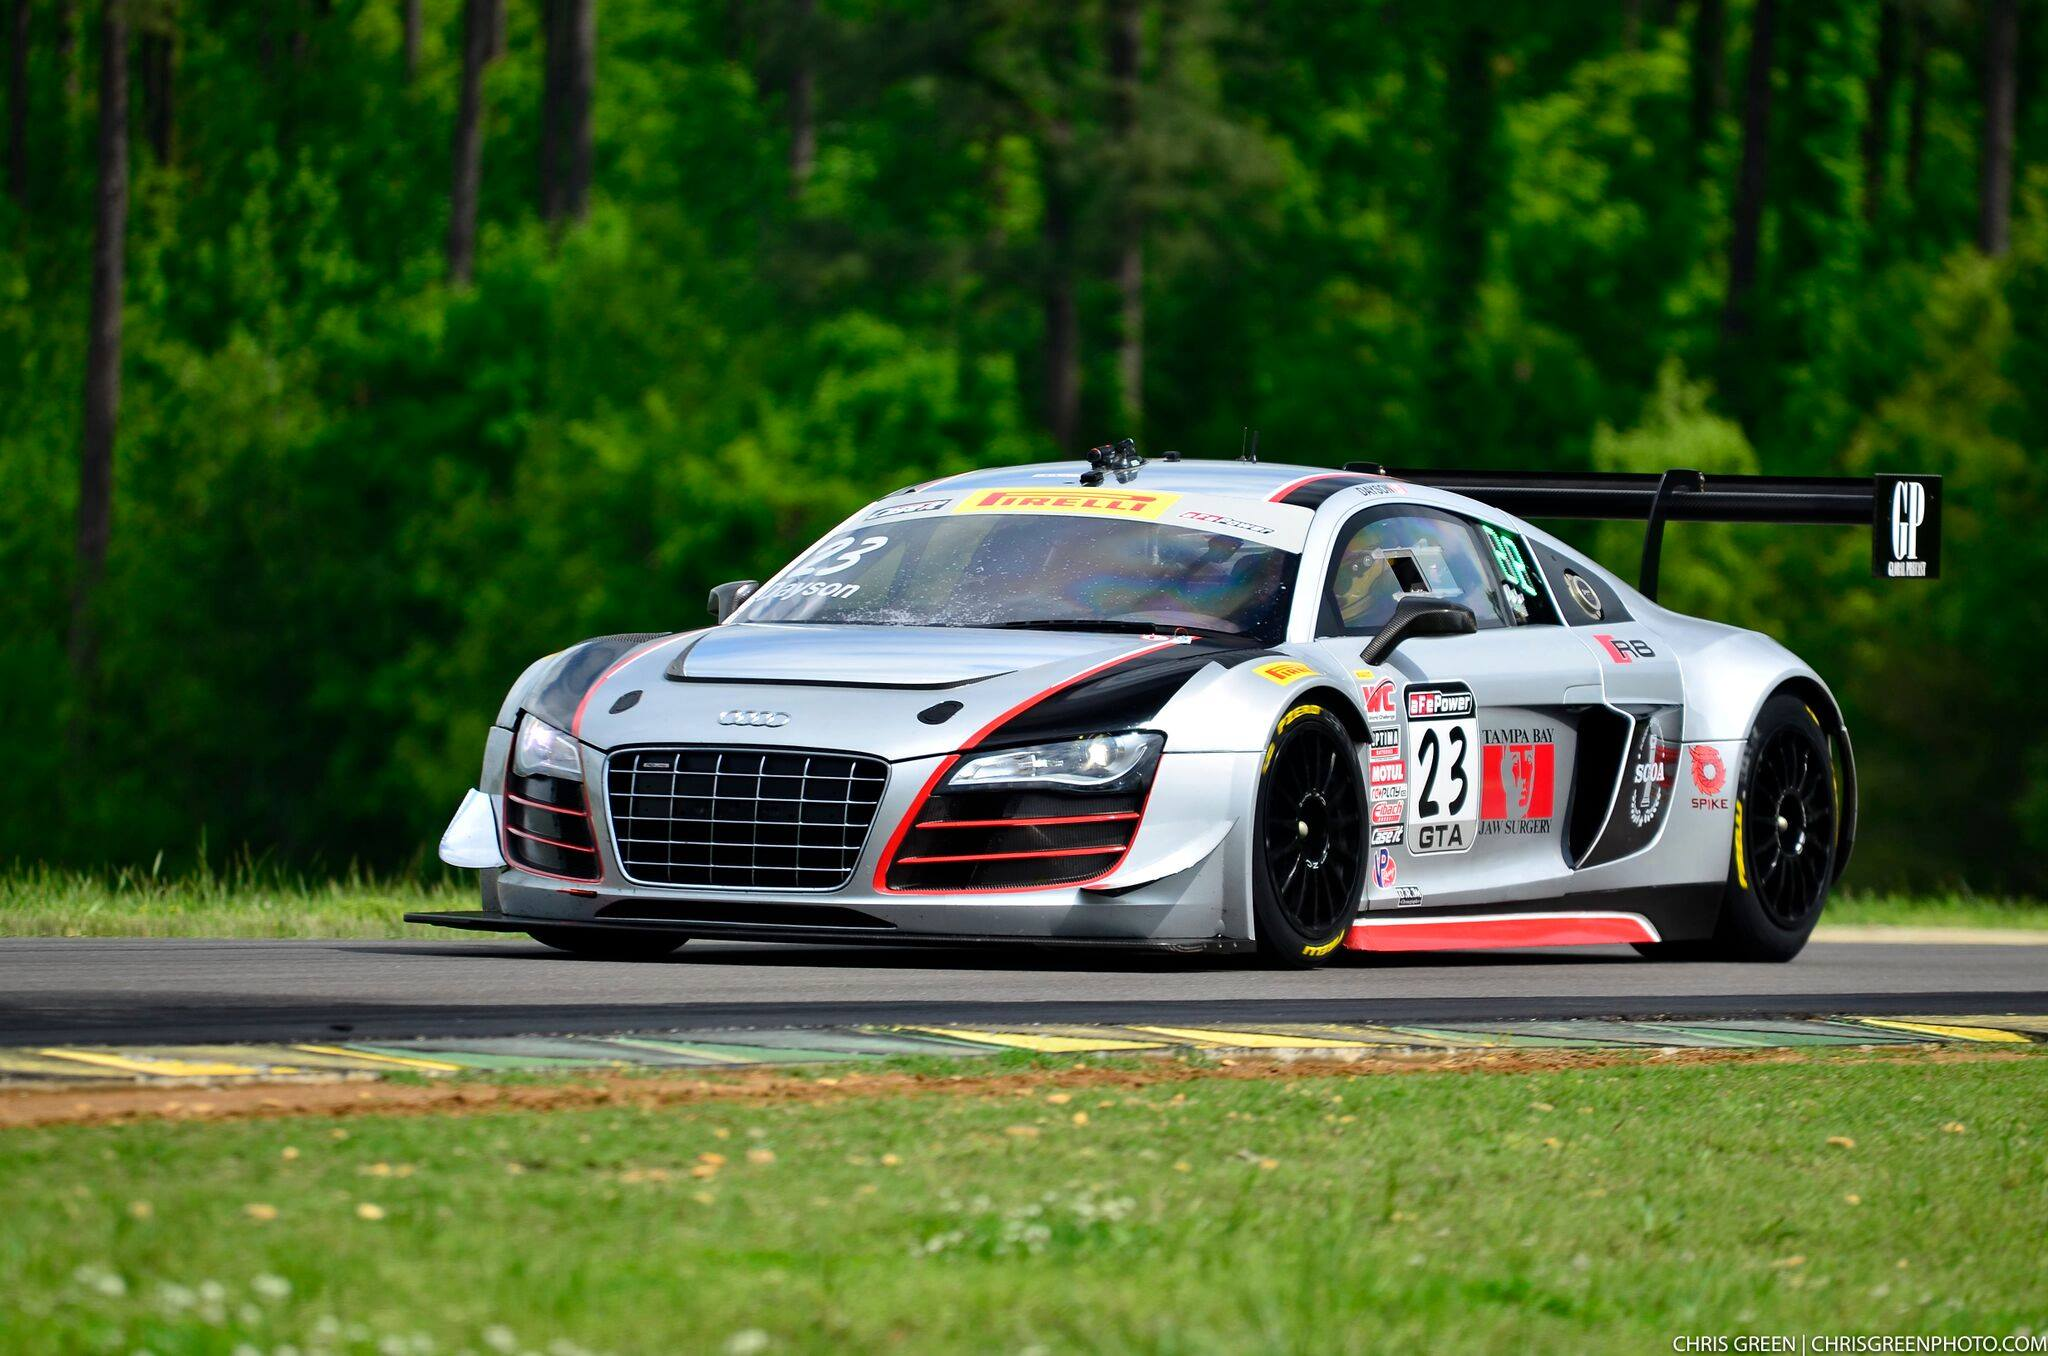 2012 audi r8 gt3 lms ultra for sale in tarpon springs. Black Bedroom Furniture Sets. Home Design Ideas